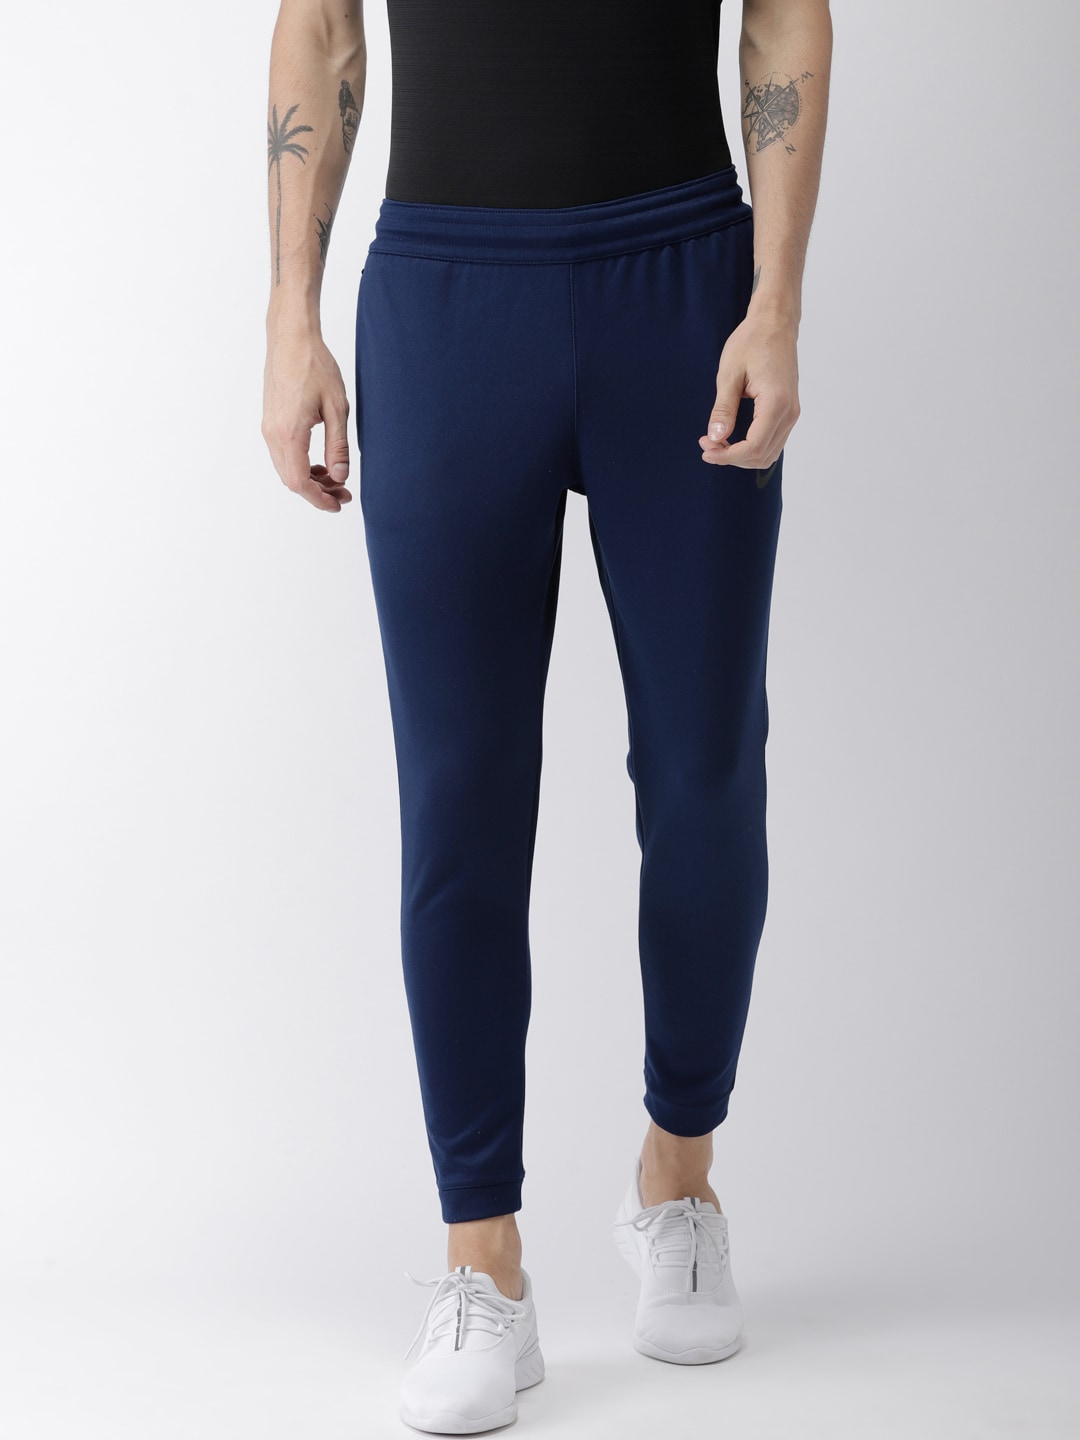 new product 03c8a f250f Knit Track Pants Pants - Buy Knit Track Pants Pants online in India